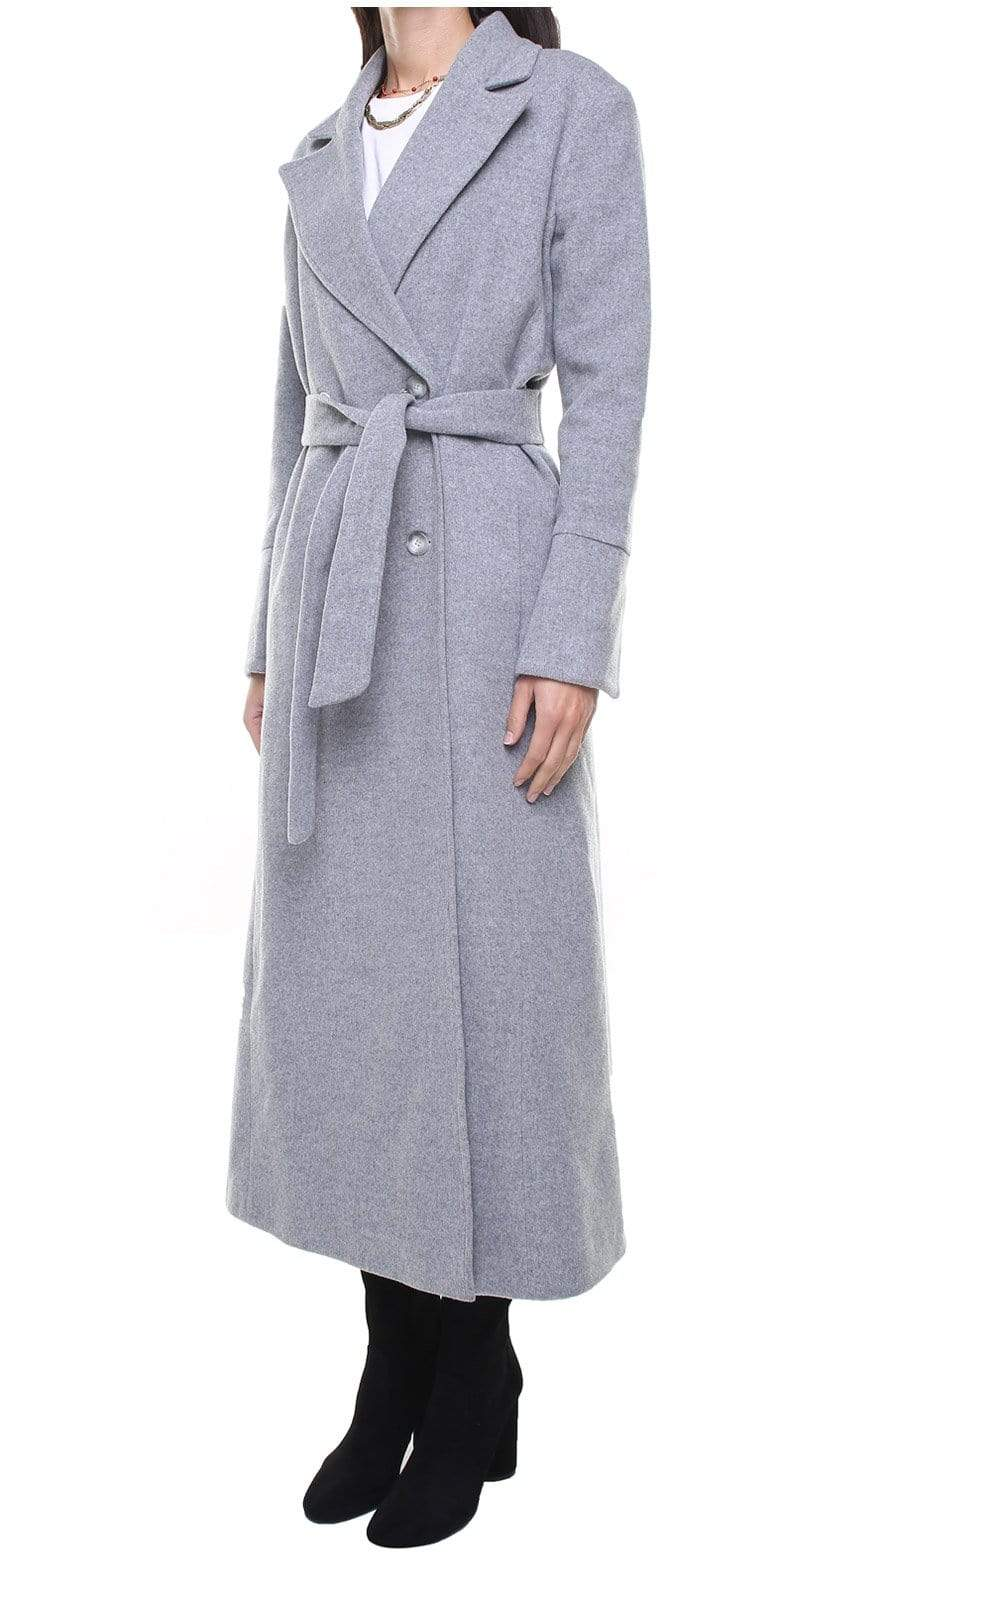 Souldaze Collection coat Valentina Coat. Surplus Wool and Cashmere. sustainable fashion ethical fashion